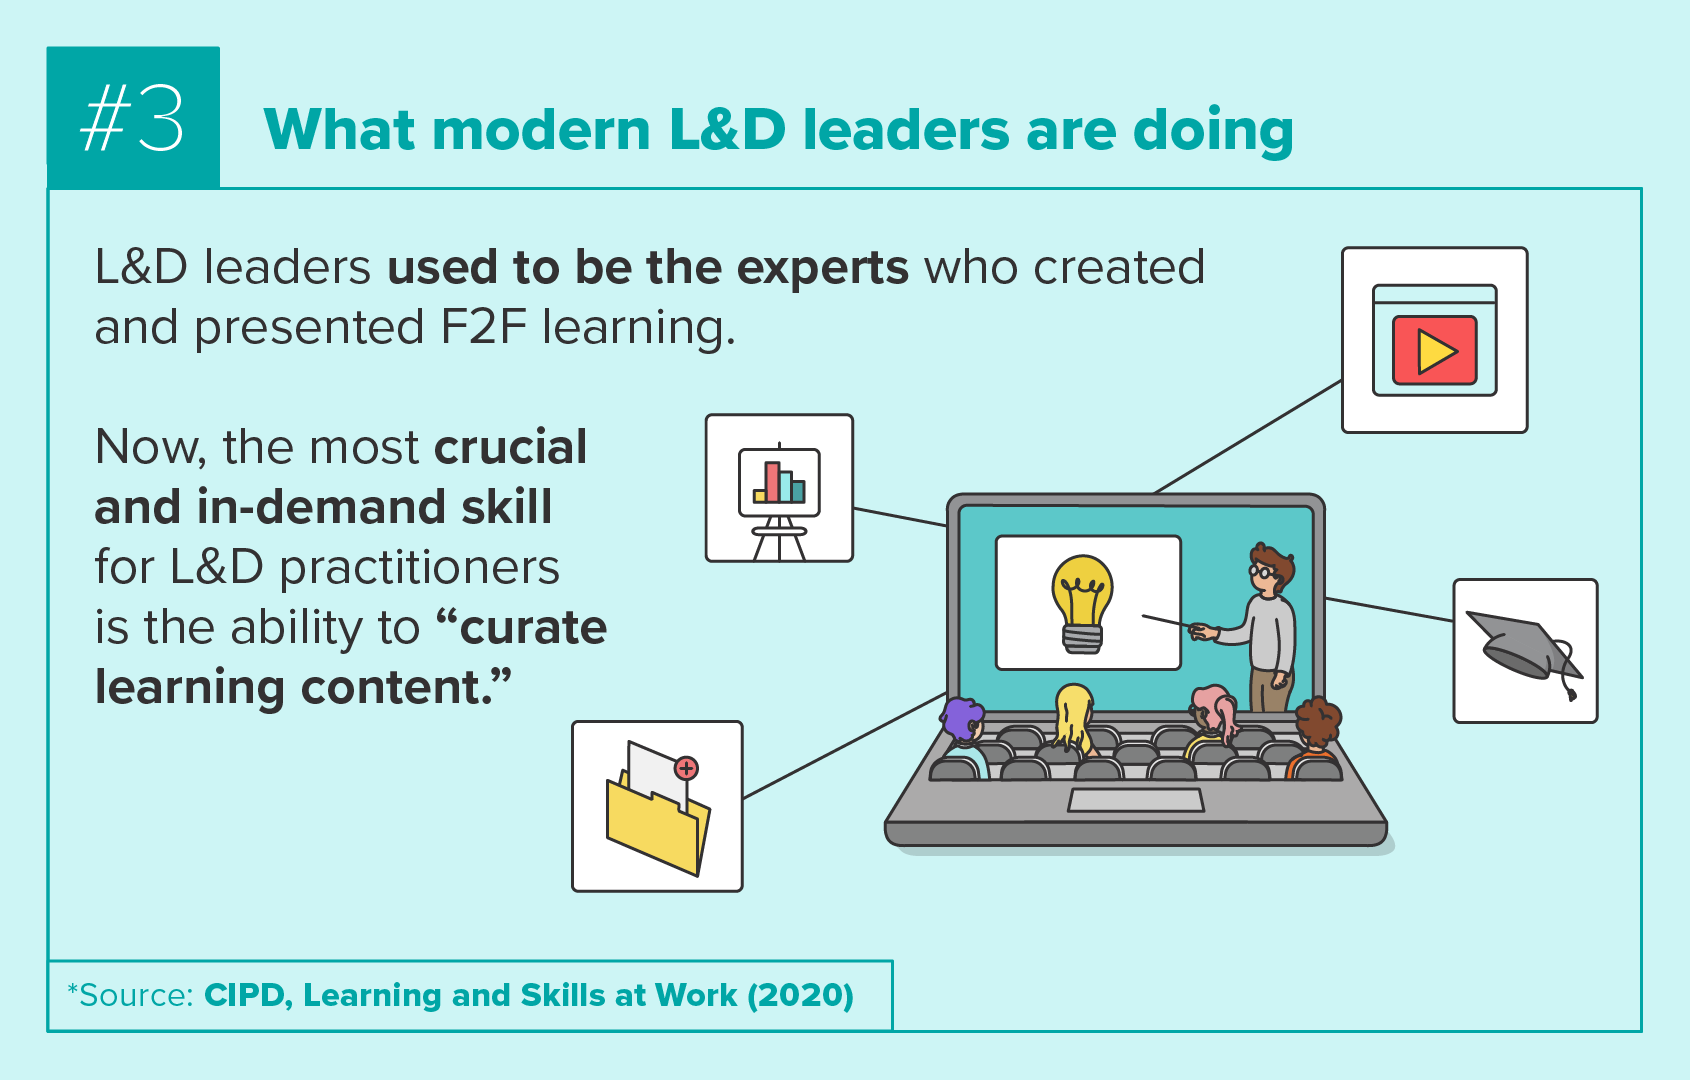 What modern L&D leaders are doing